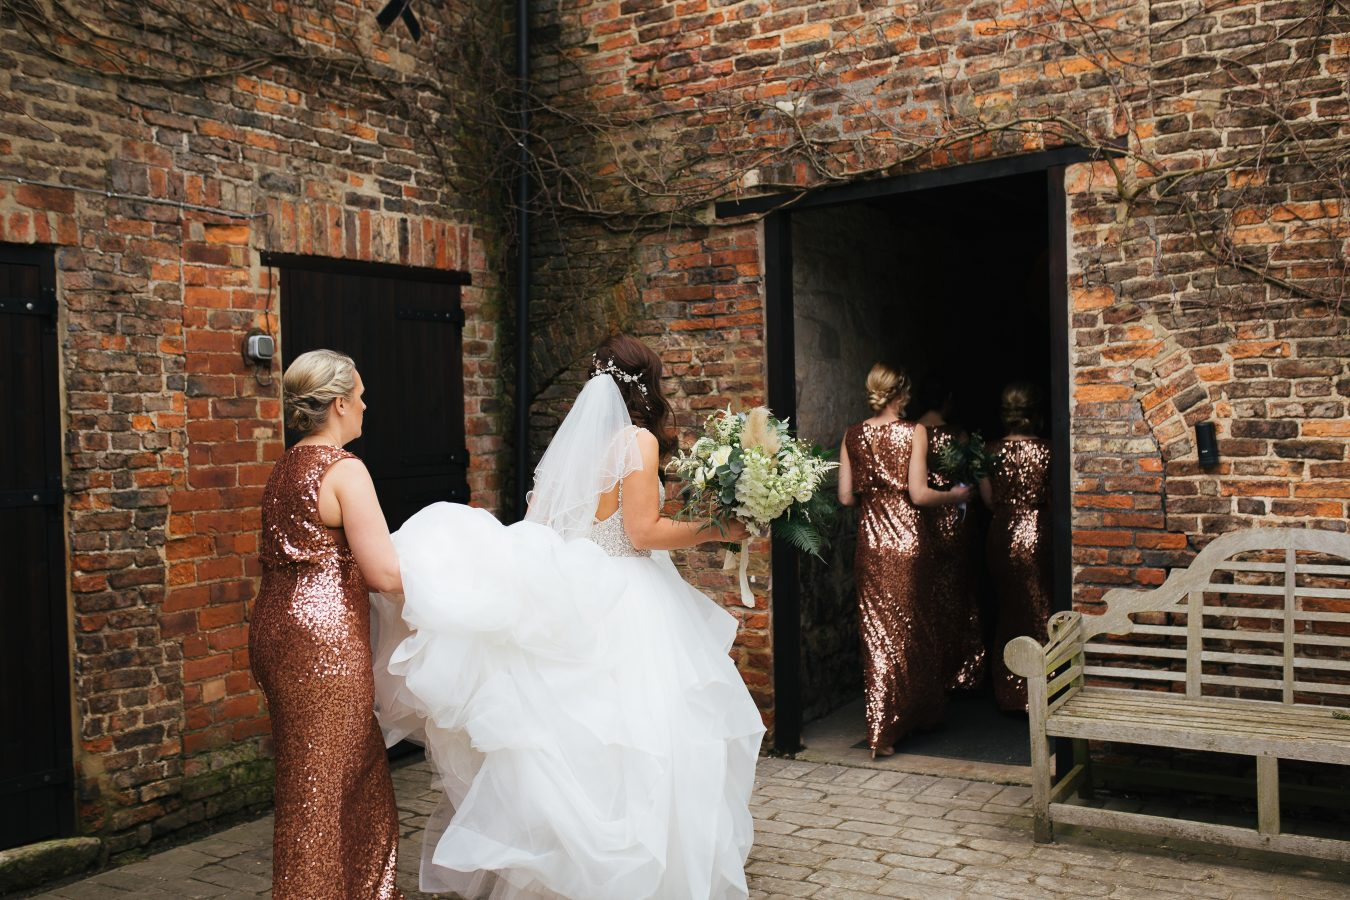 Bridal-party-the-normans-weddings-2019